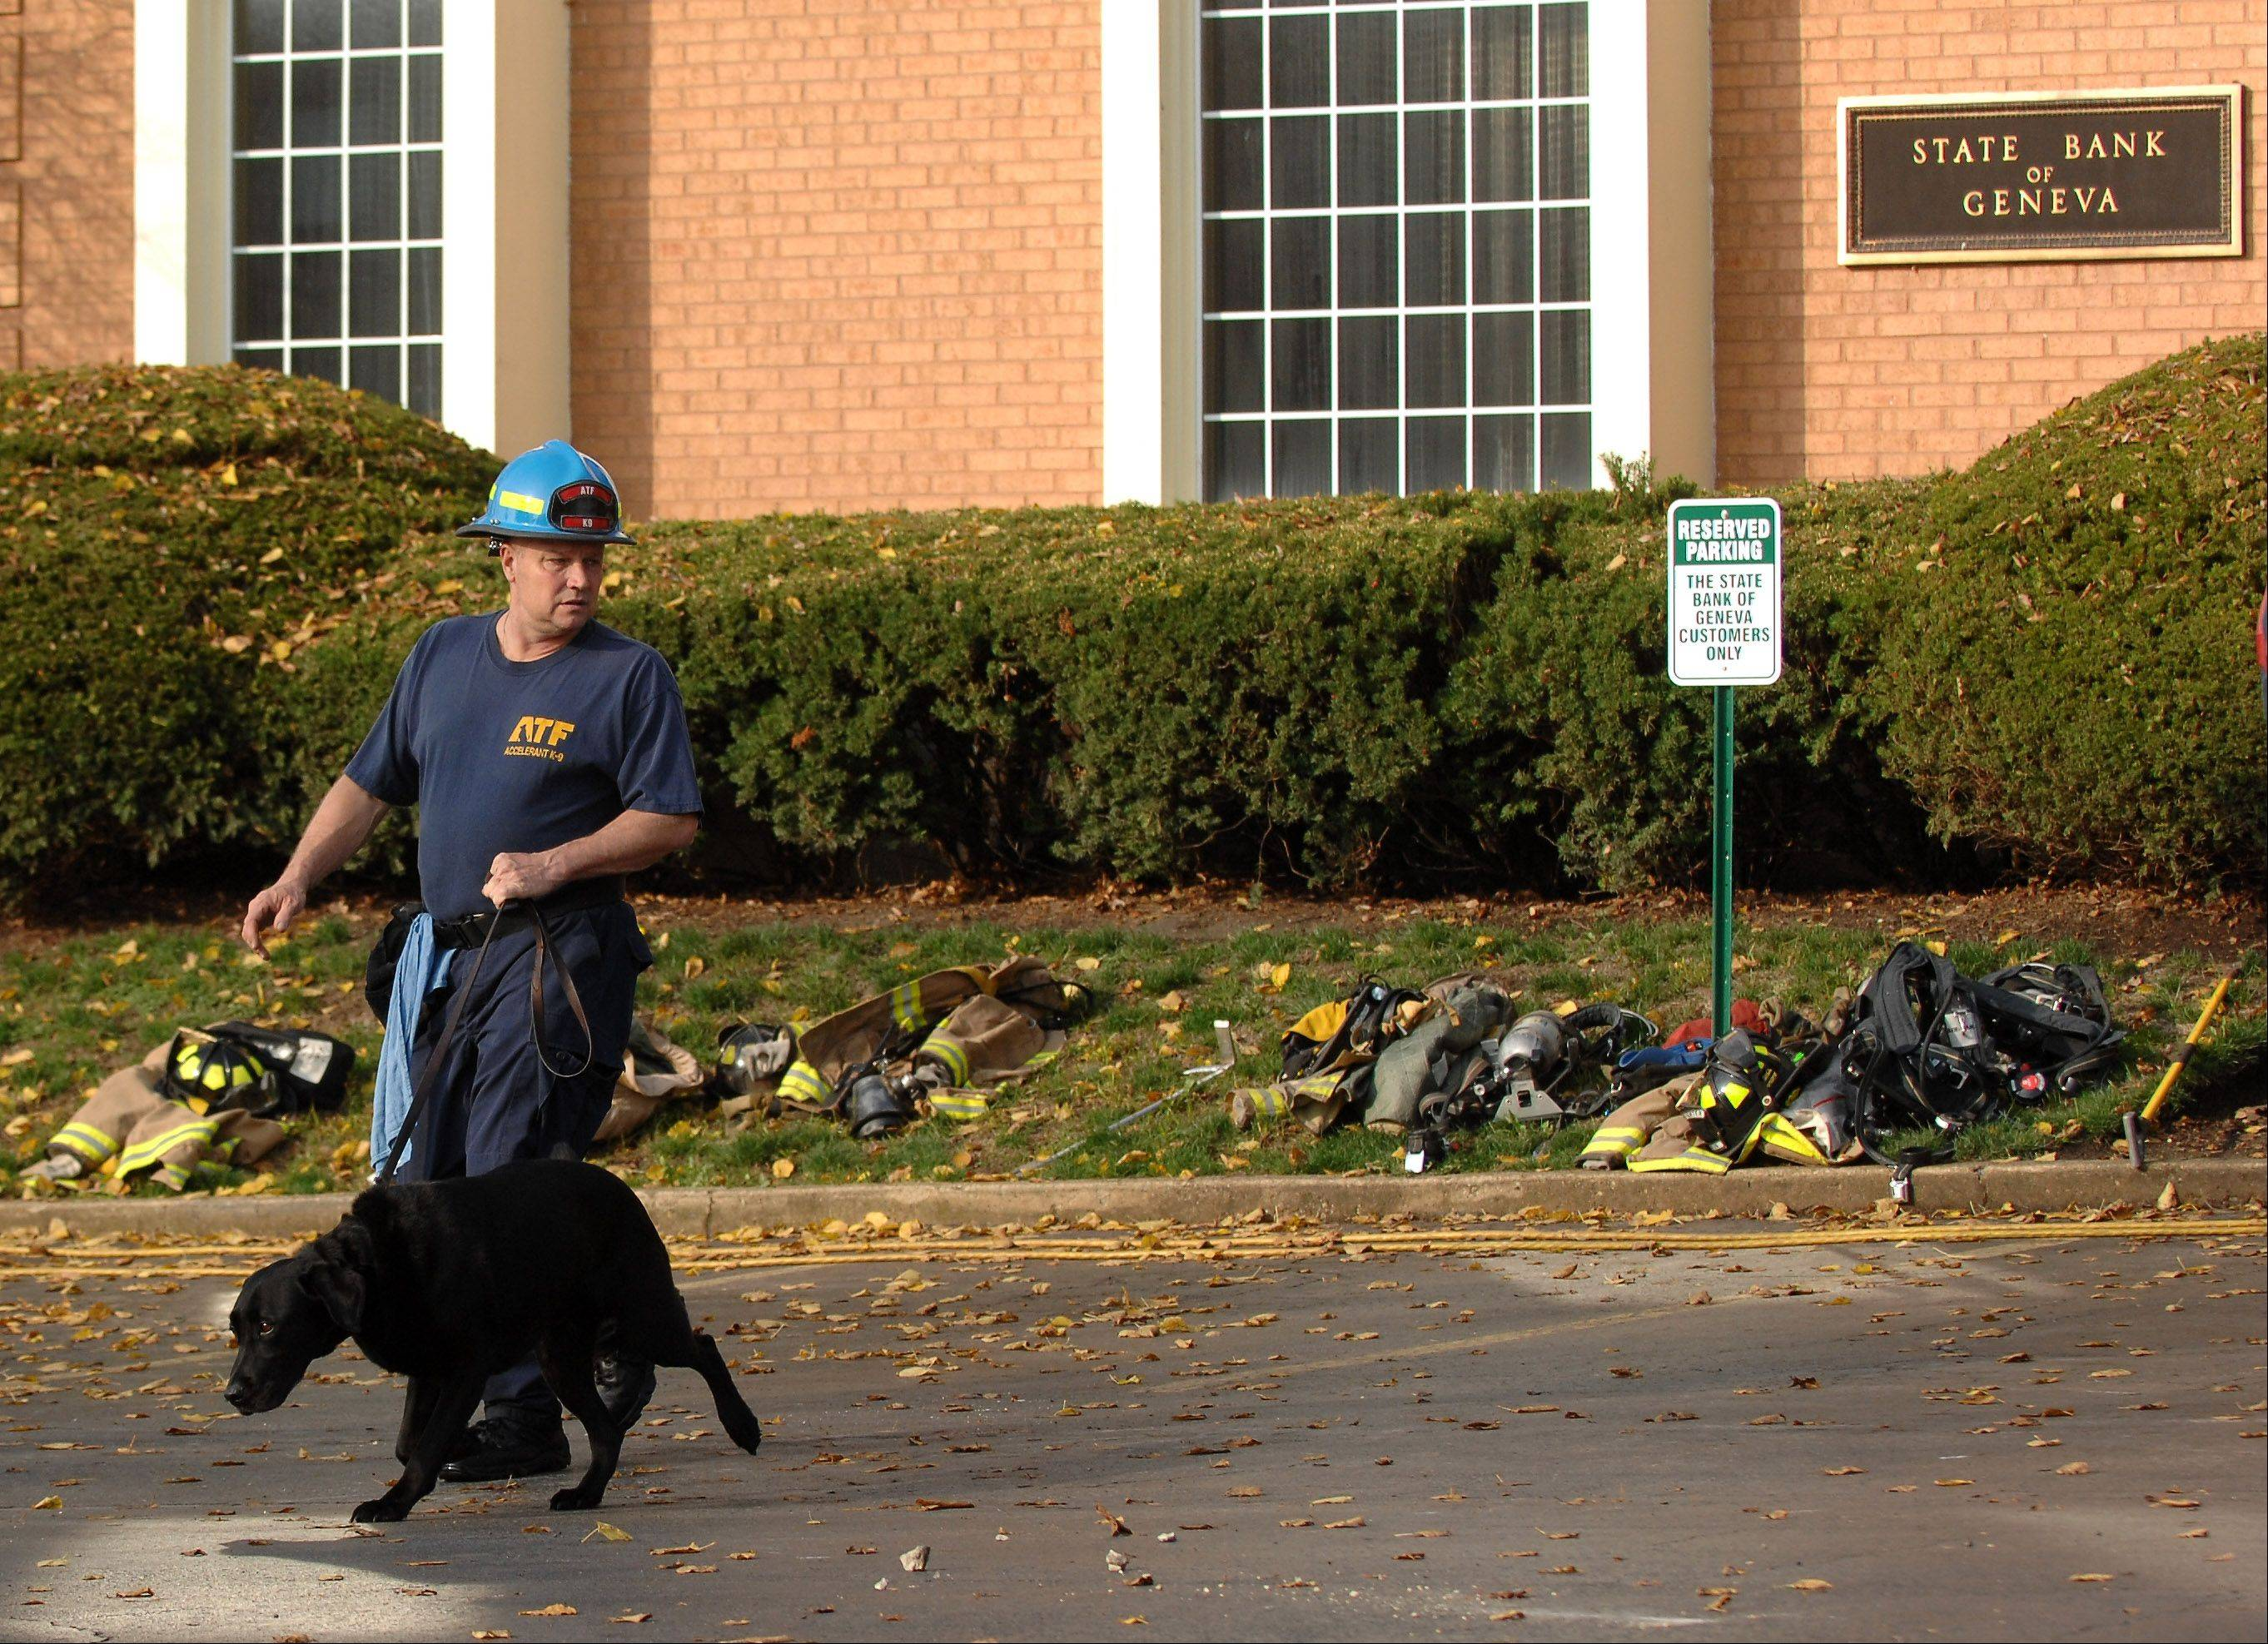 An ATF accelerant detection dog leaves the scene Wednesday morning after inspecting the State Bank of Geneva on South Fourth Street.